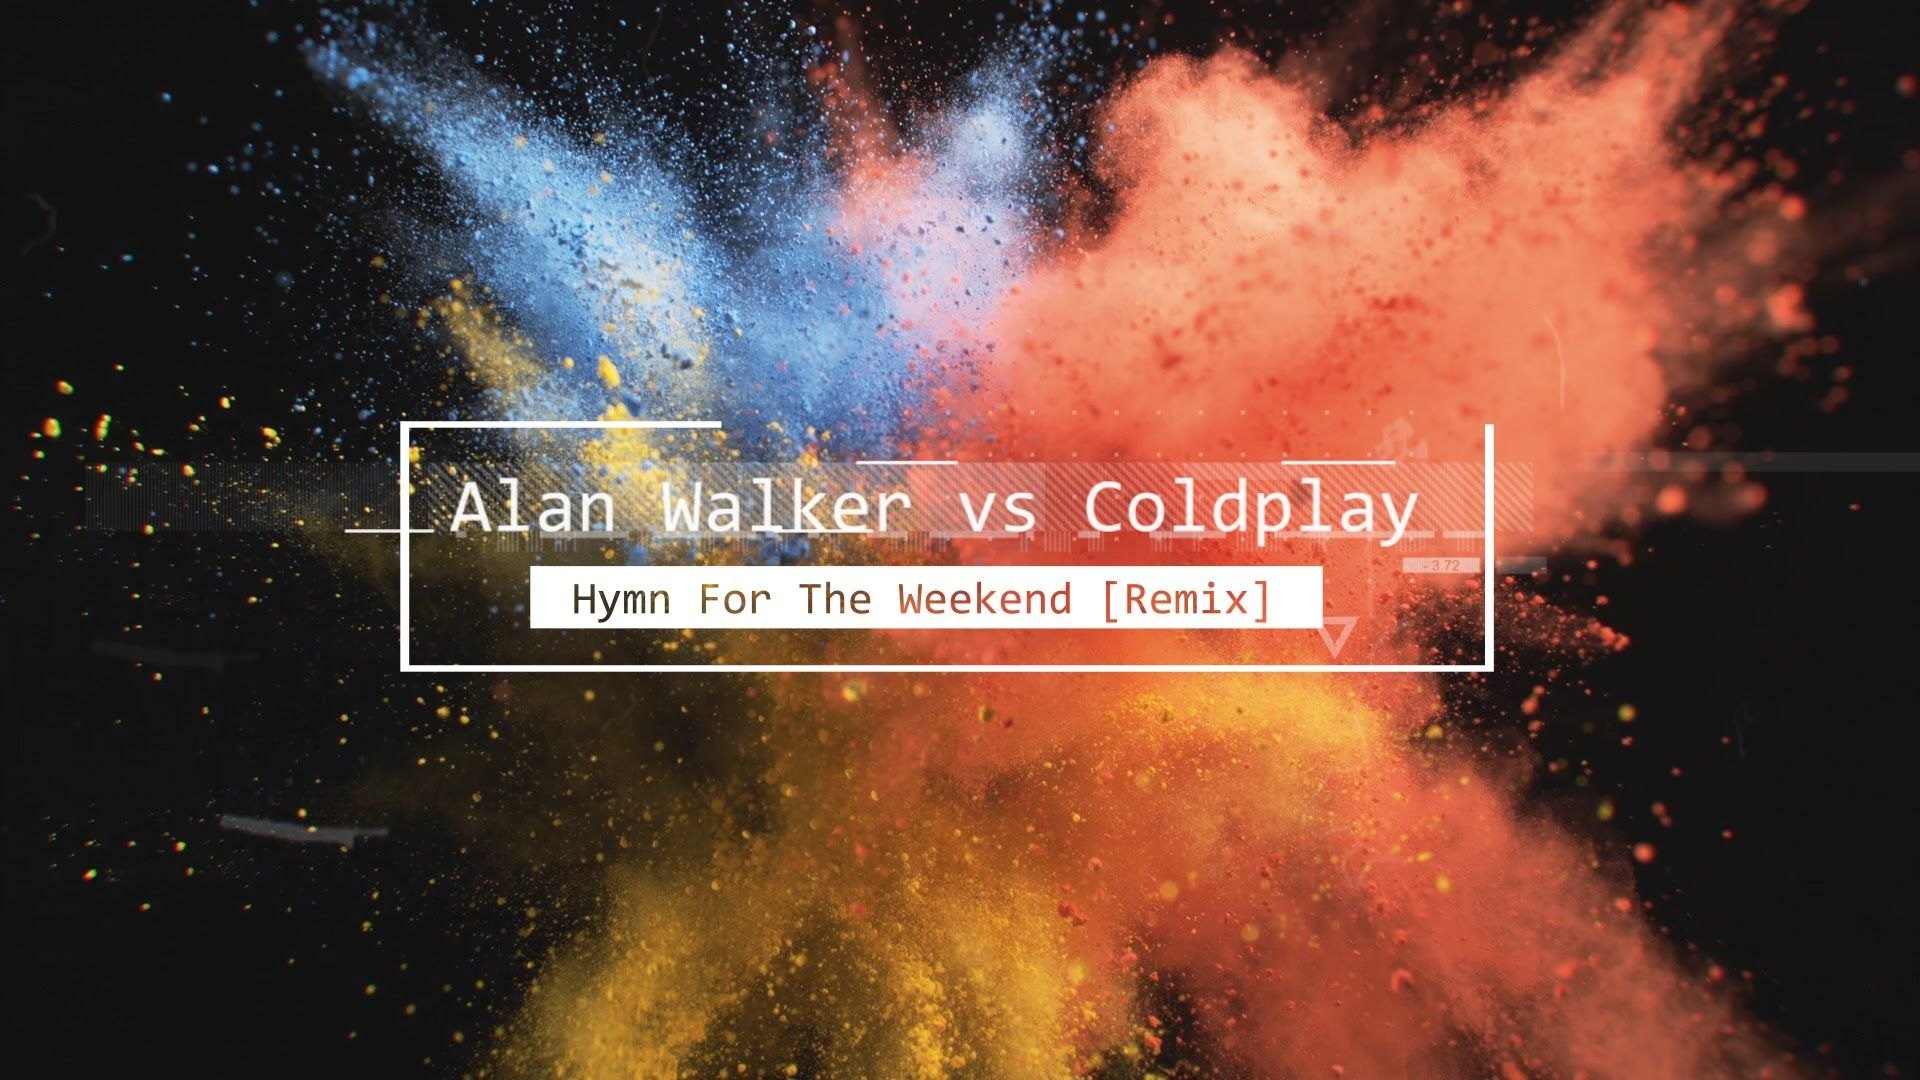 Alan Walker Vs Coldplay Hymn For The Weekend Remix Musica